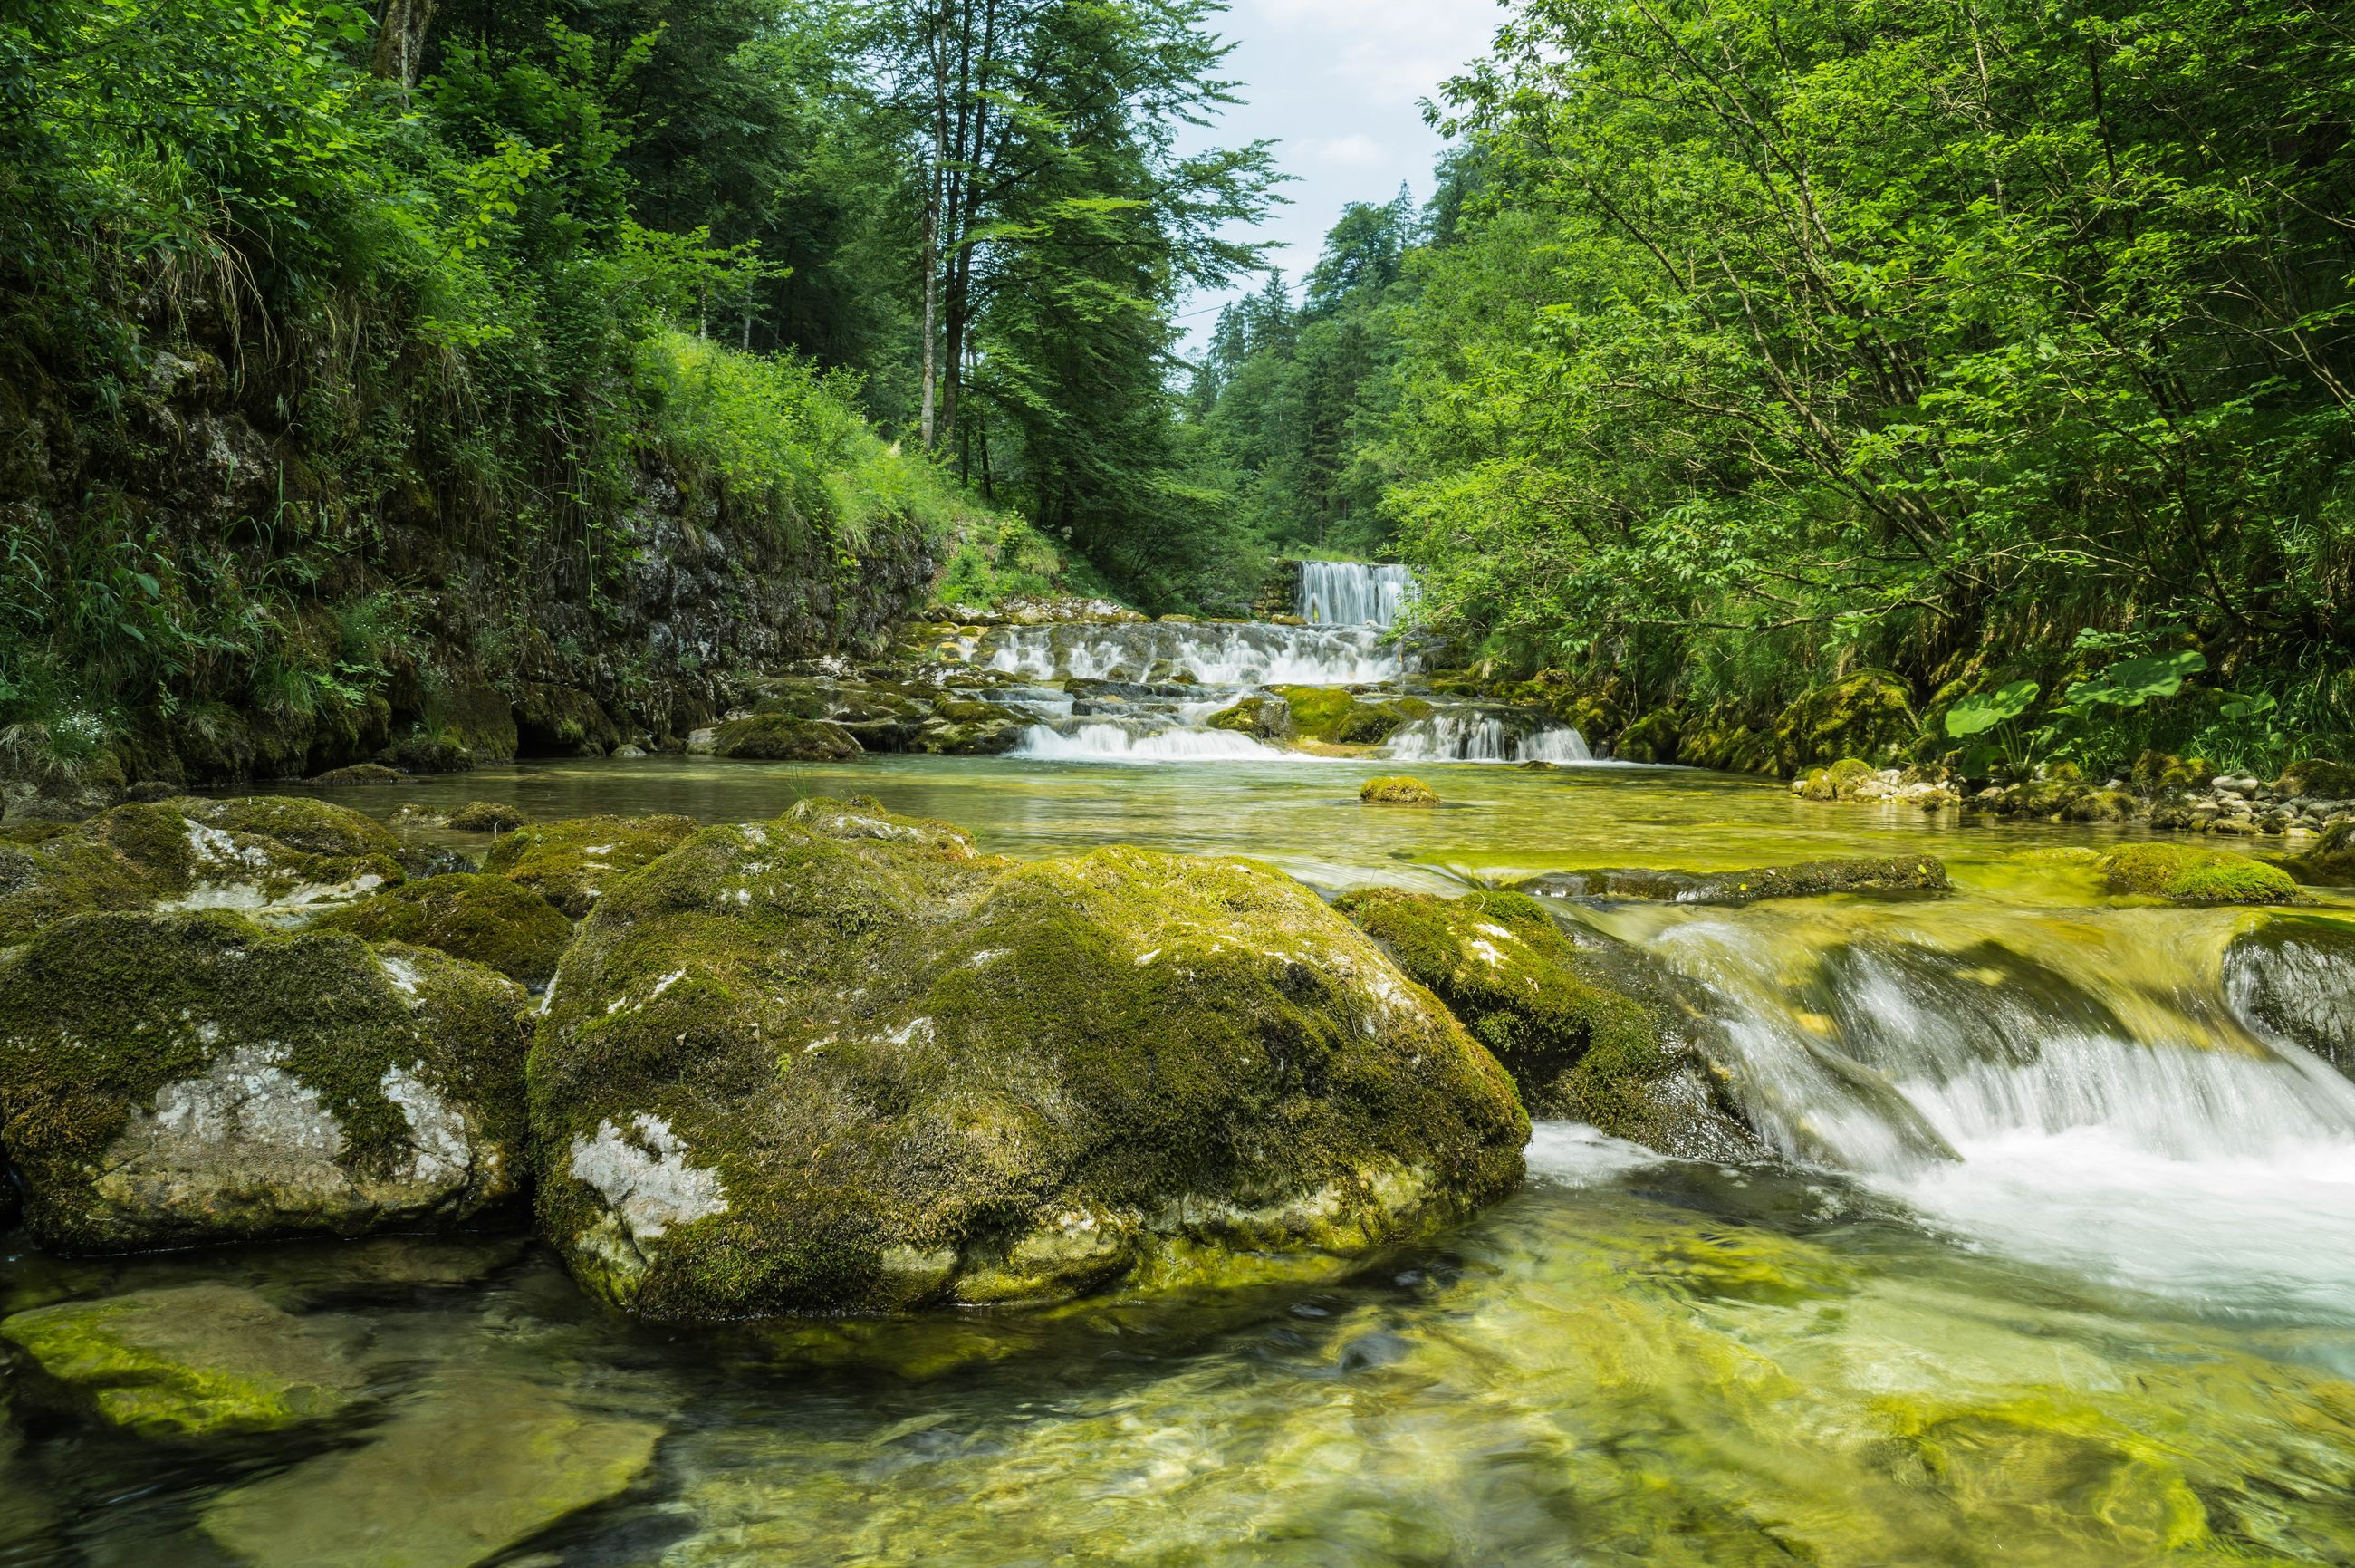 tree, nature, forest, beauty in nature, rock - object, tranquil scene, lush foliage, tranquility, water, no people, scenics, outdoors, green color, river, growth, day, travel destinations, landscape, waterfall, sky